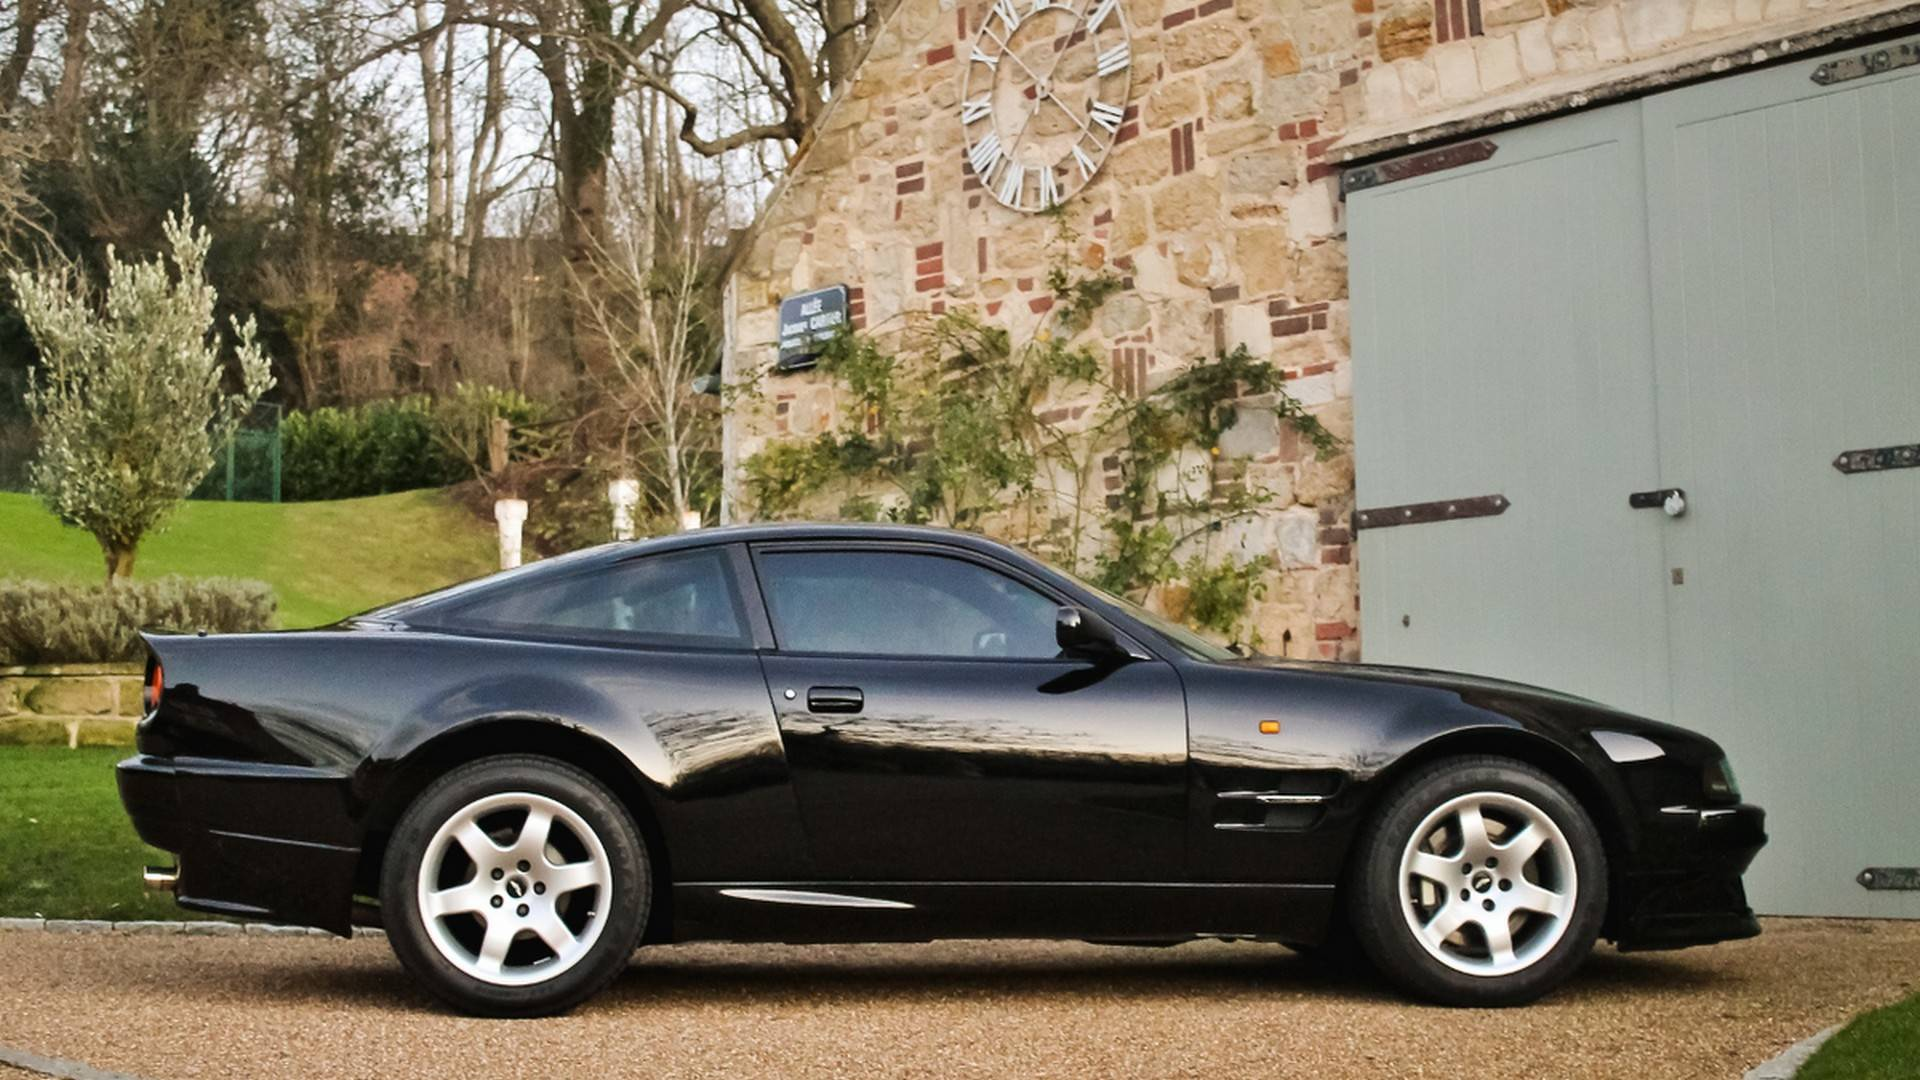 The Aston Martin of today evokes associations with grand touring vehicles – opulent, cozy and well suited for long journeys. However, things were markedly different back in the 1990s, and many tuners still remember those times.